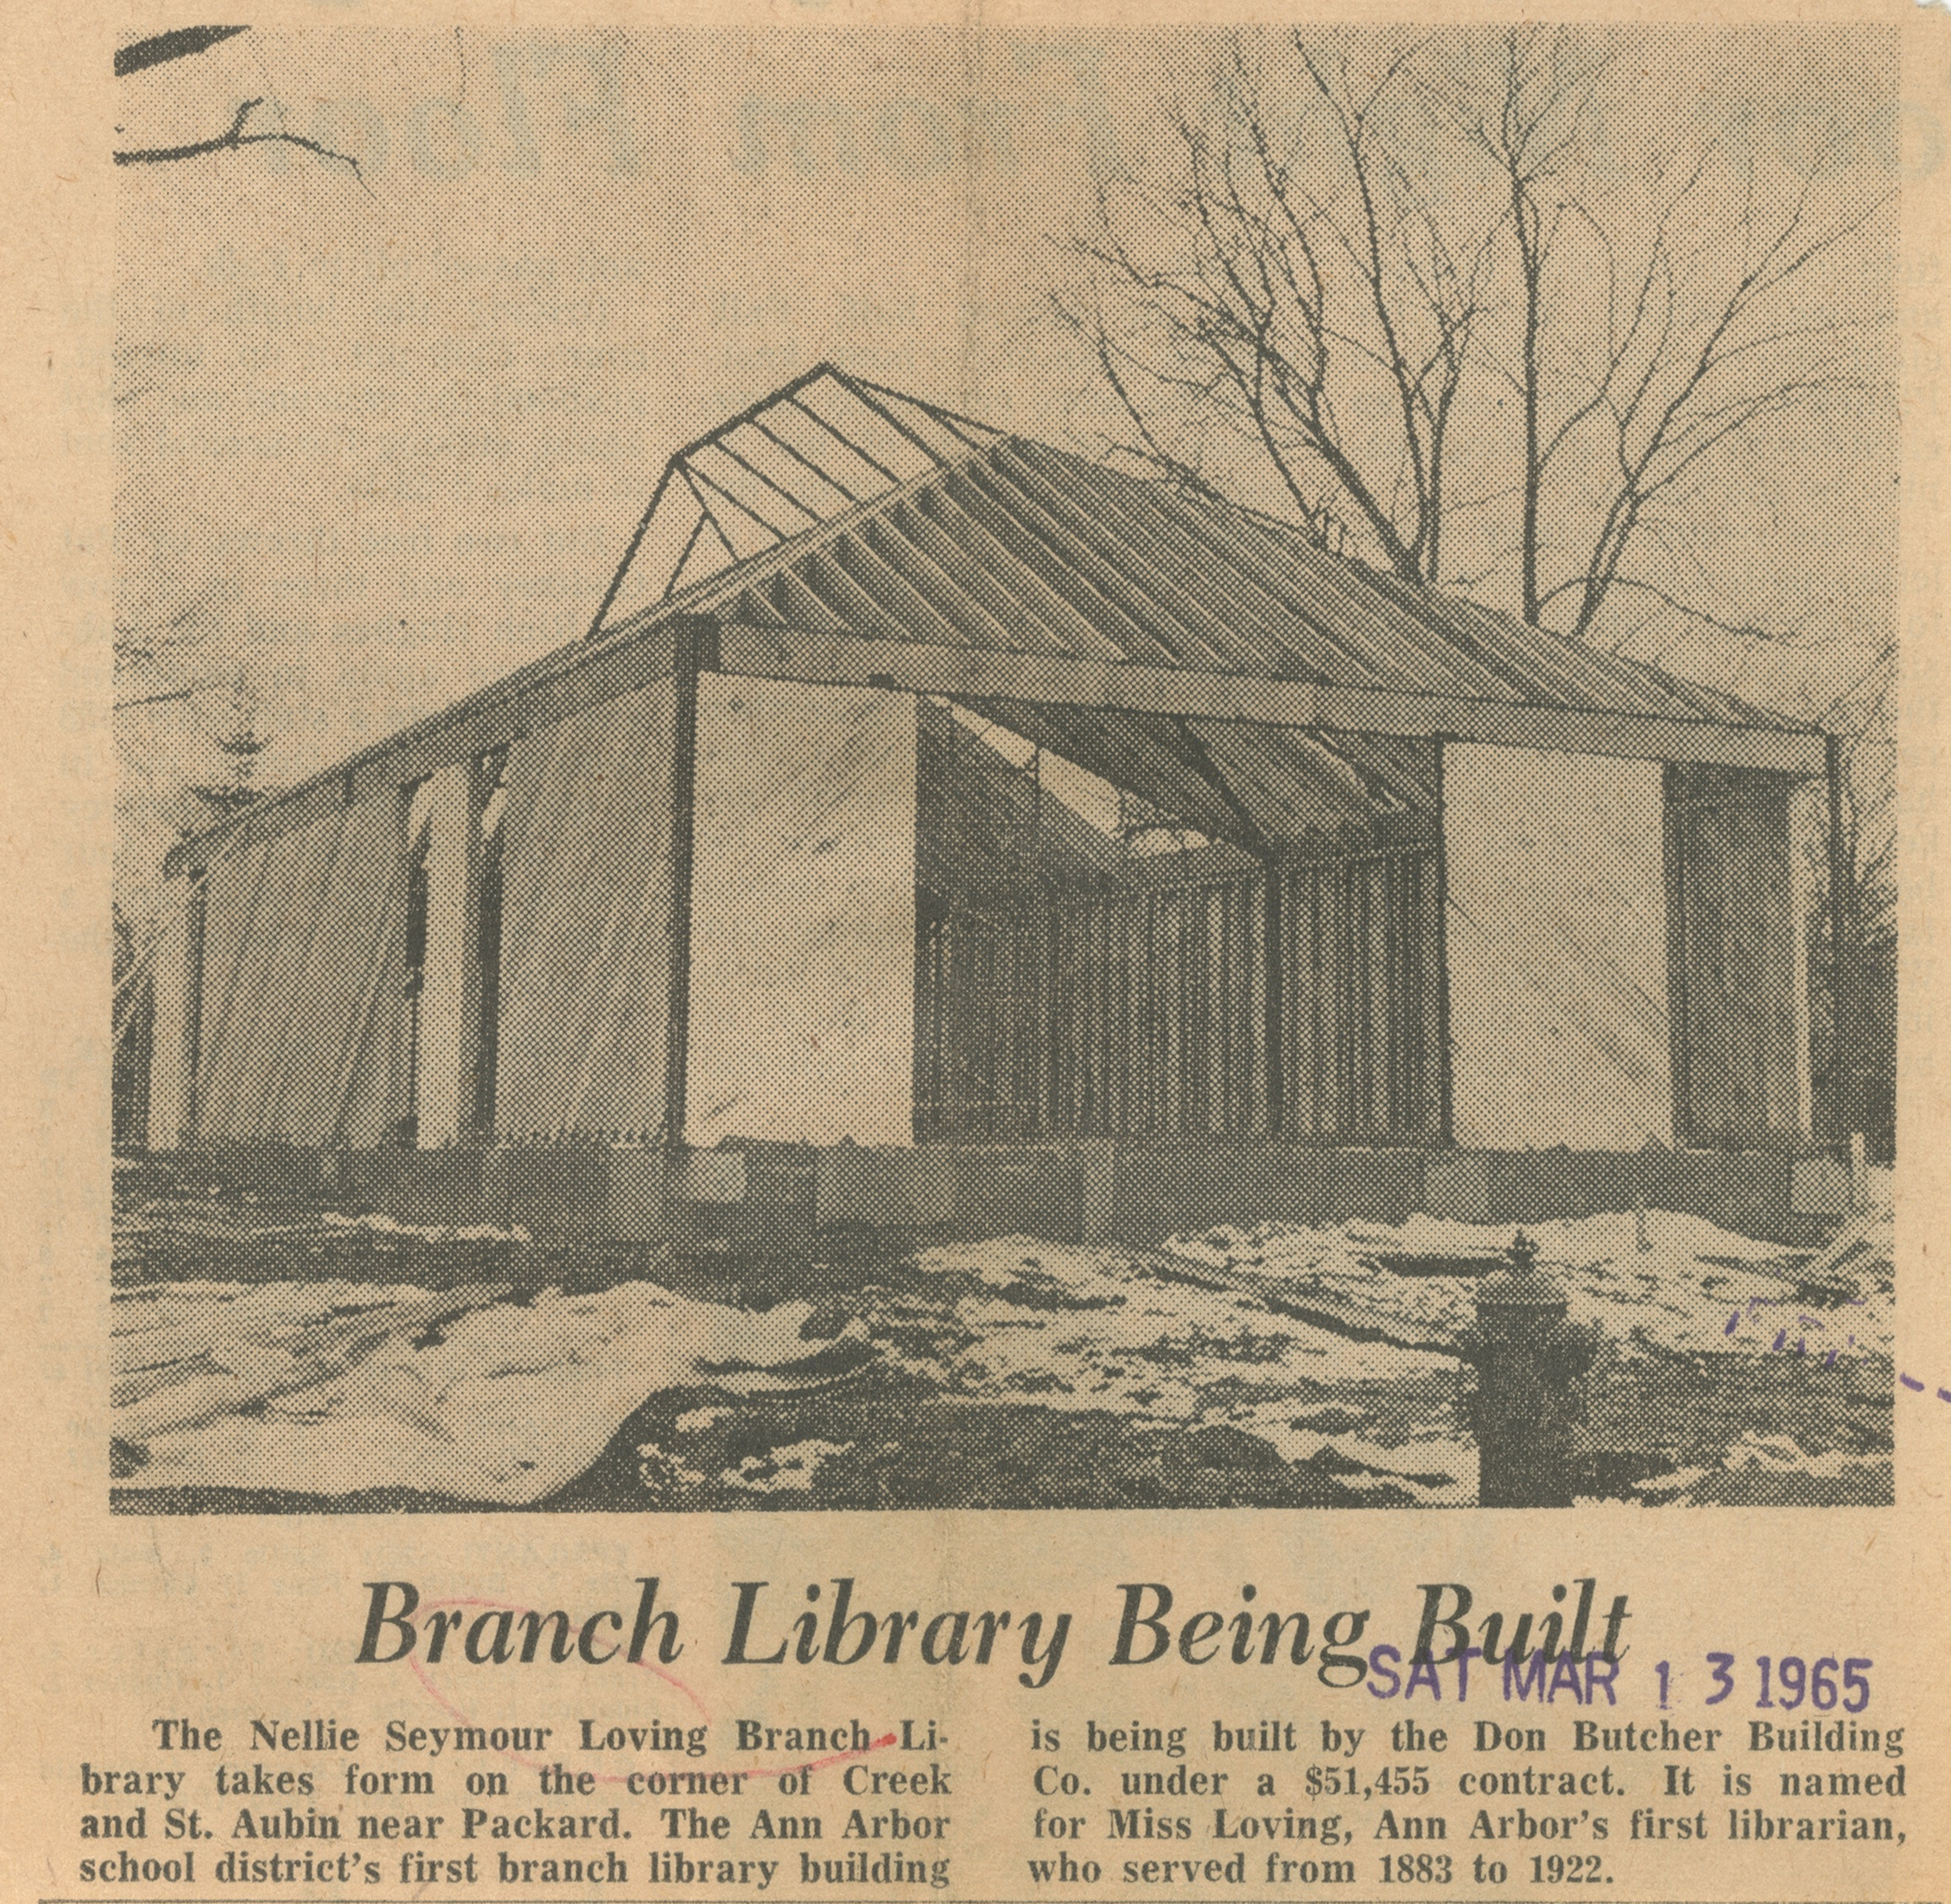 Branch Library Being Built image